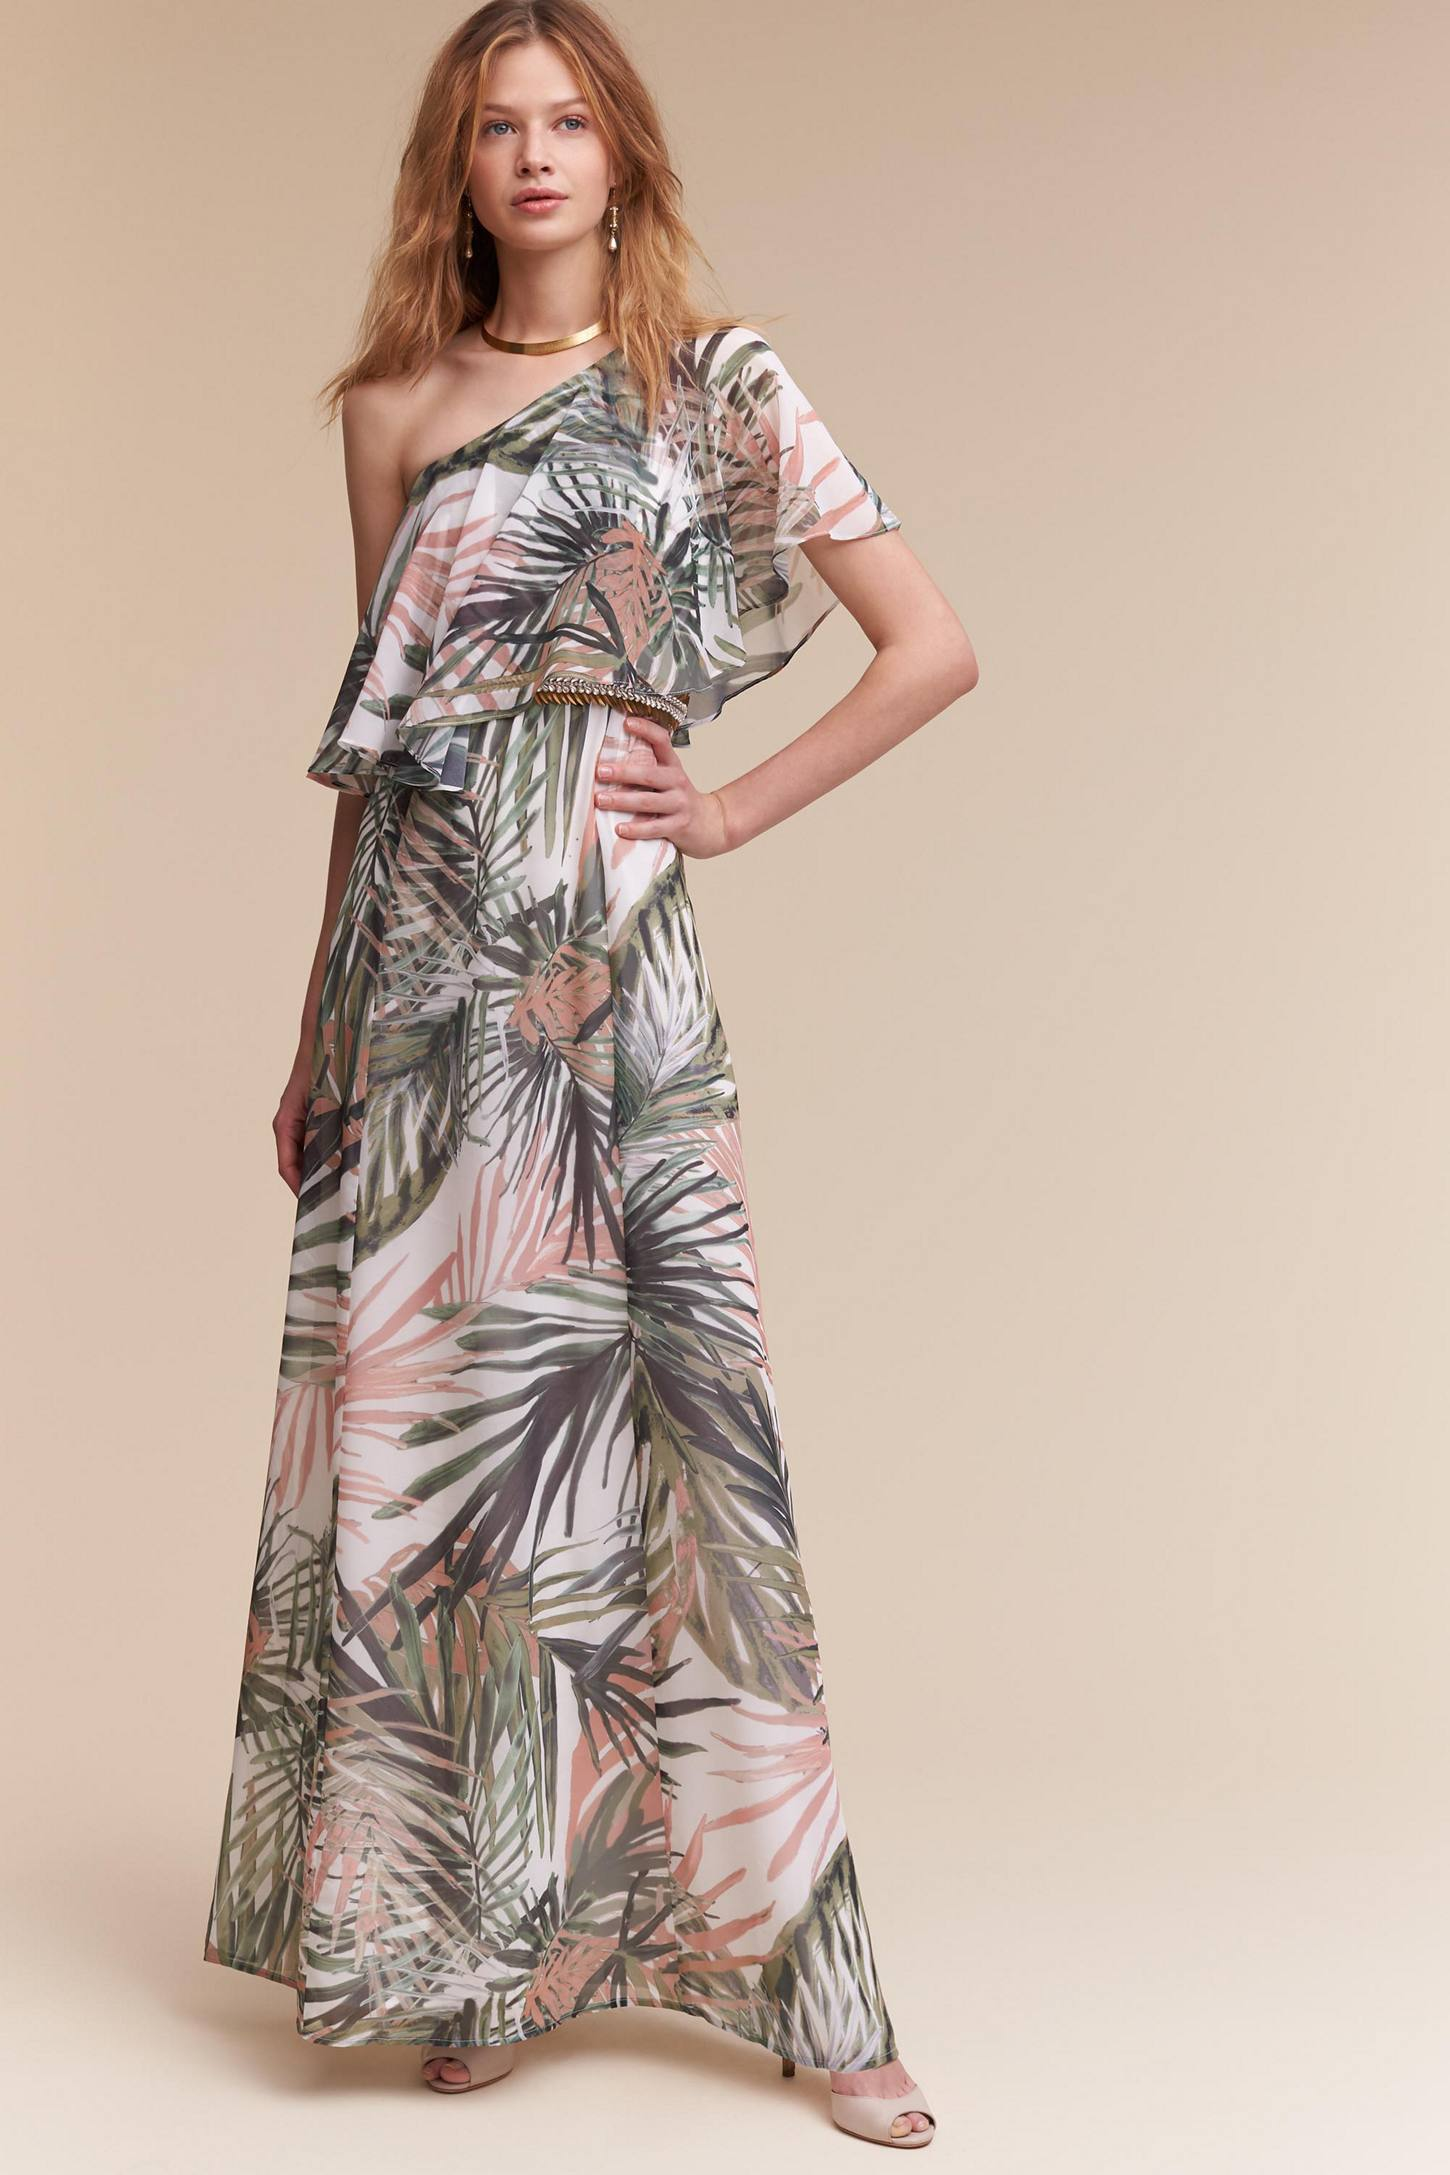 Slide View: 1: Imari Maxi Dress